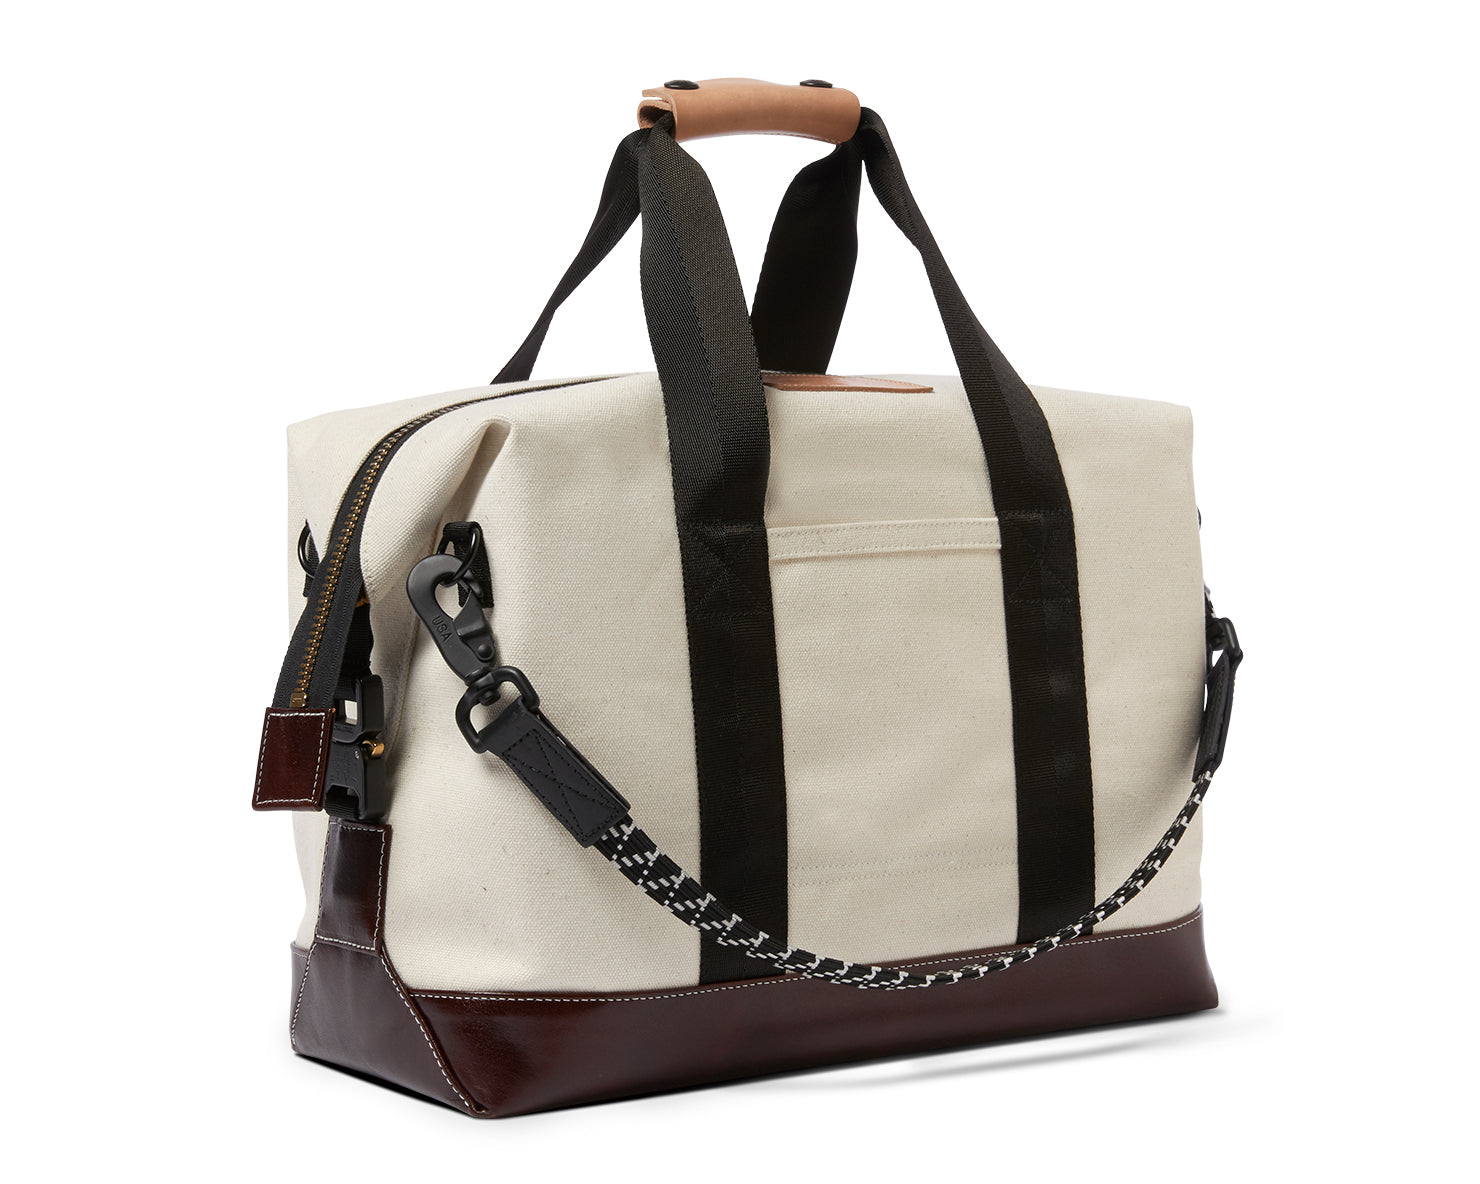 CW MORGAN BAG | KILLSPENCER® - Natural Canvas